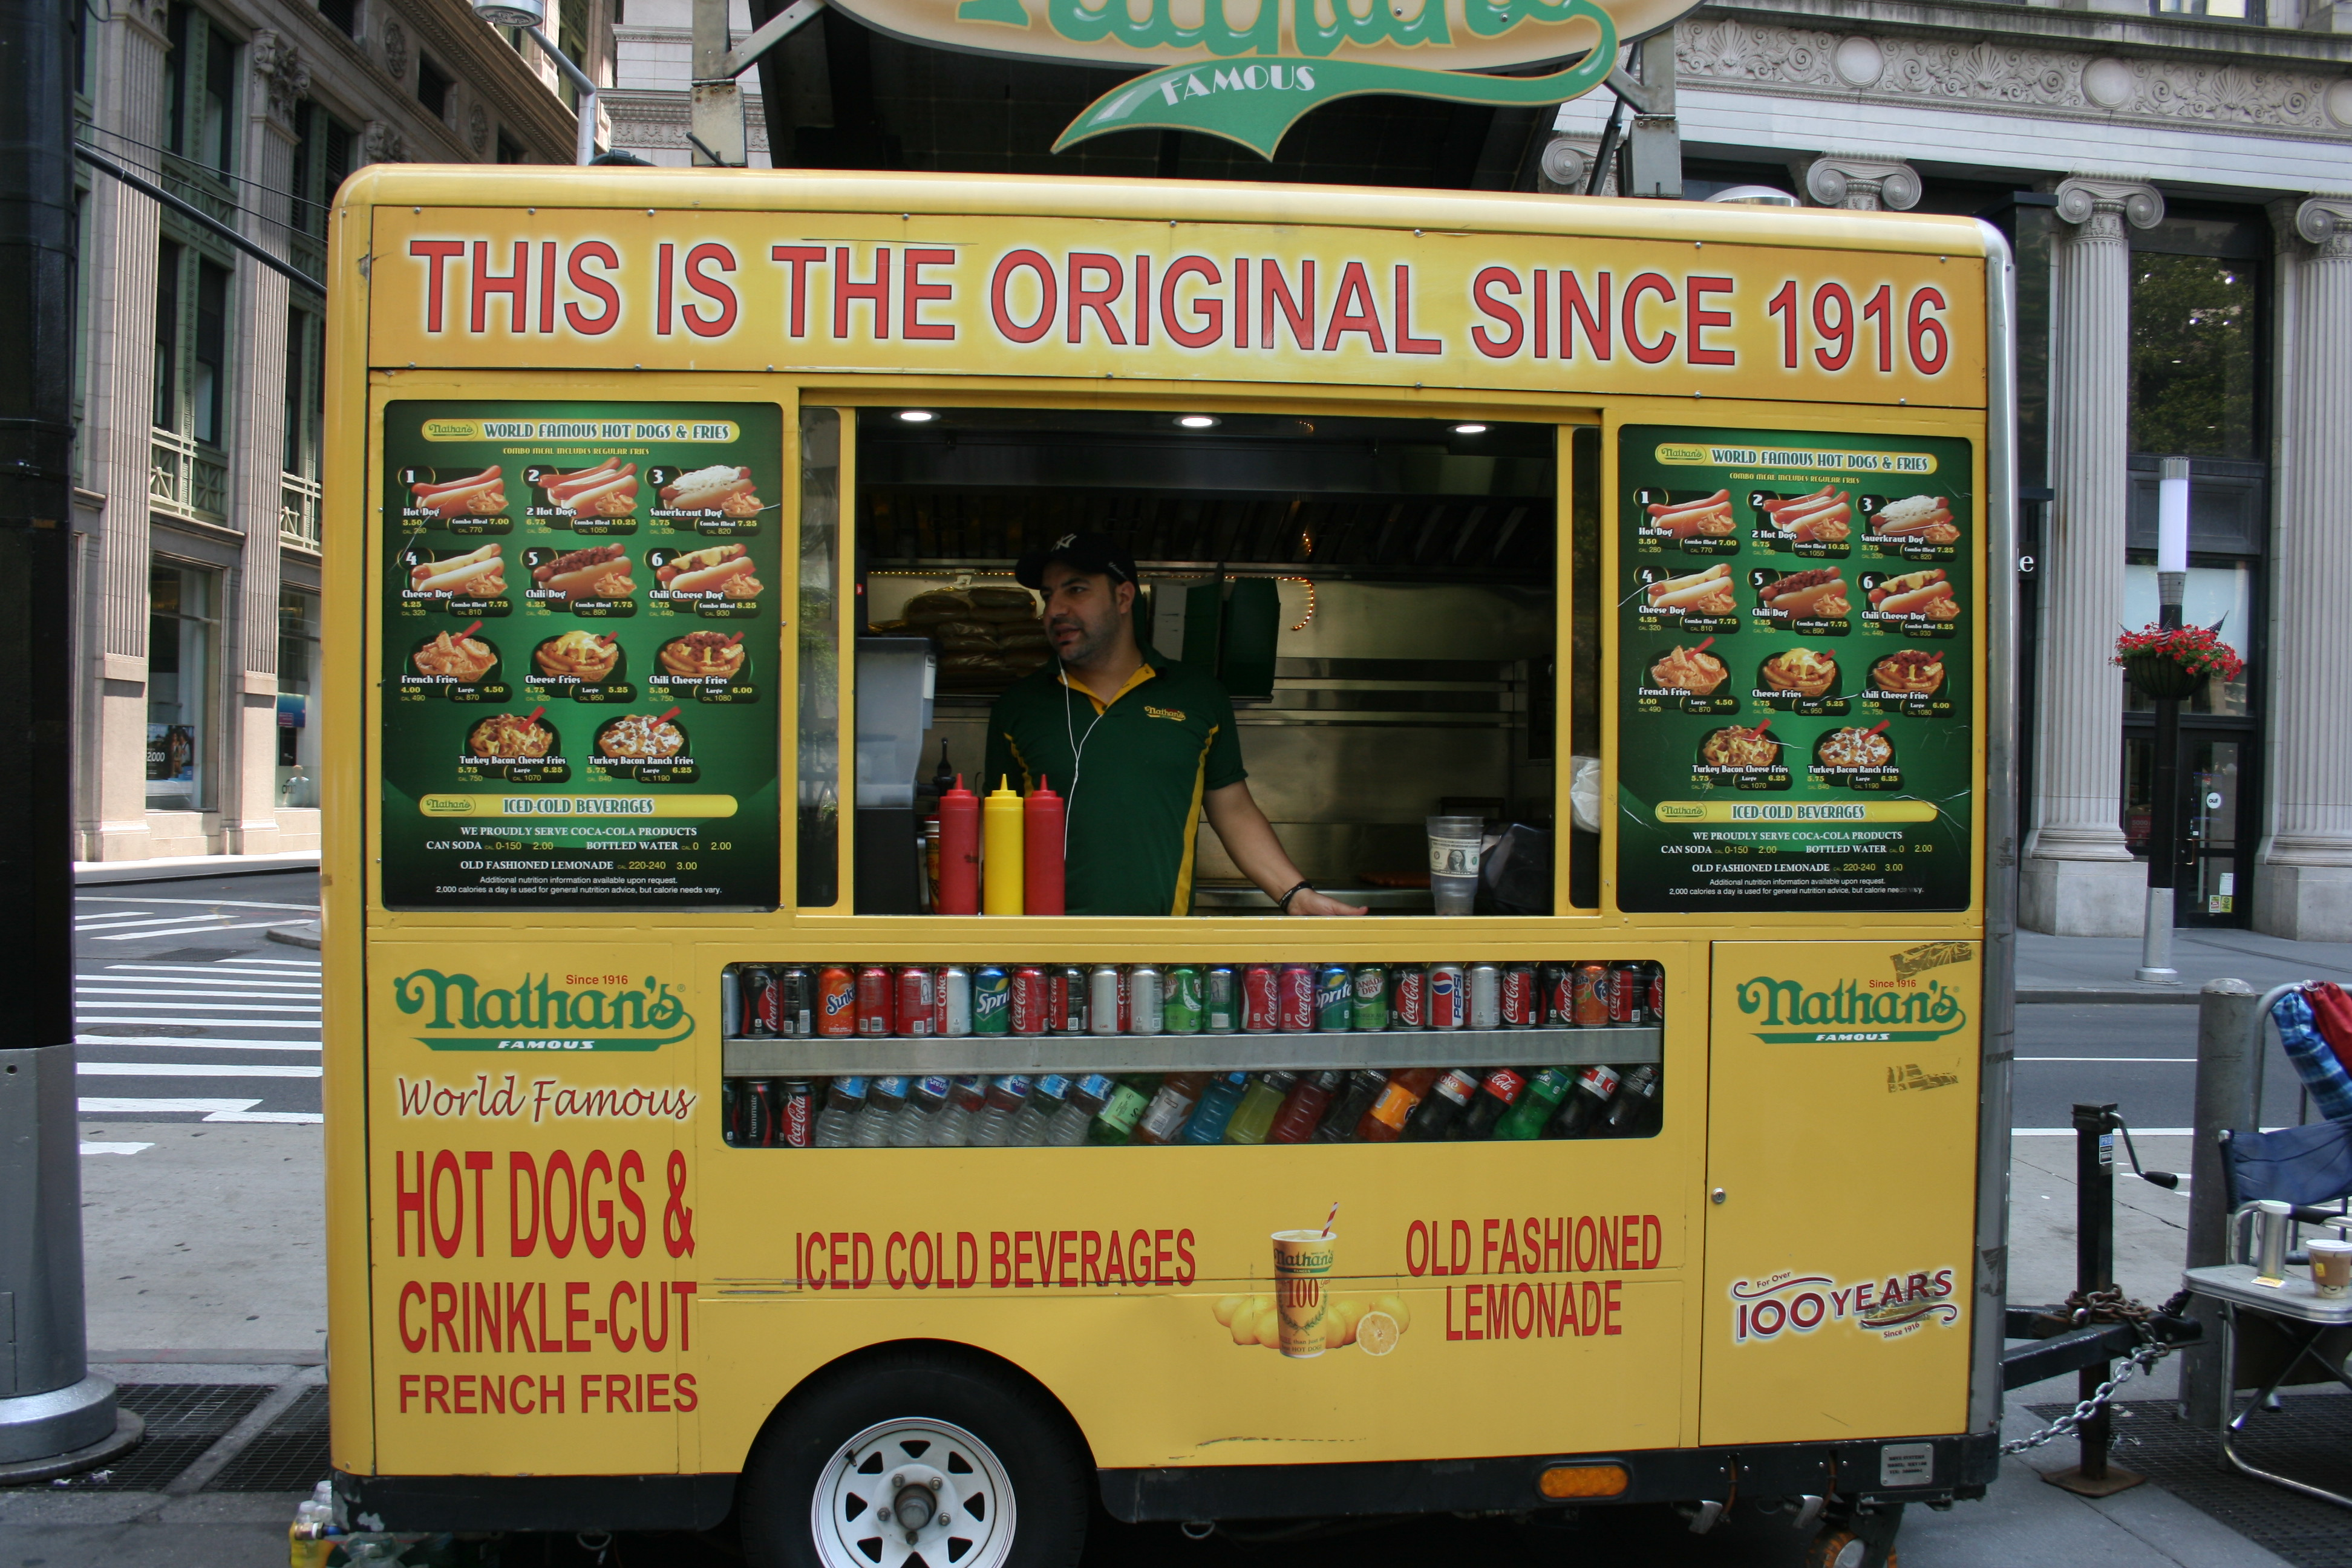 Times Square food stall, New York